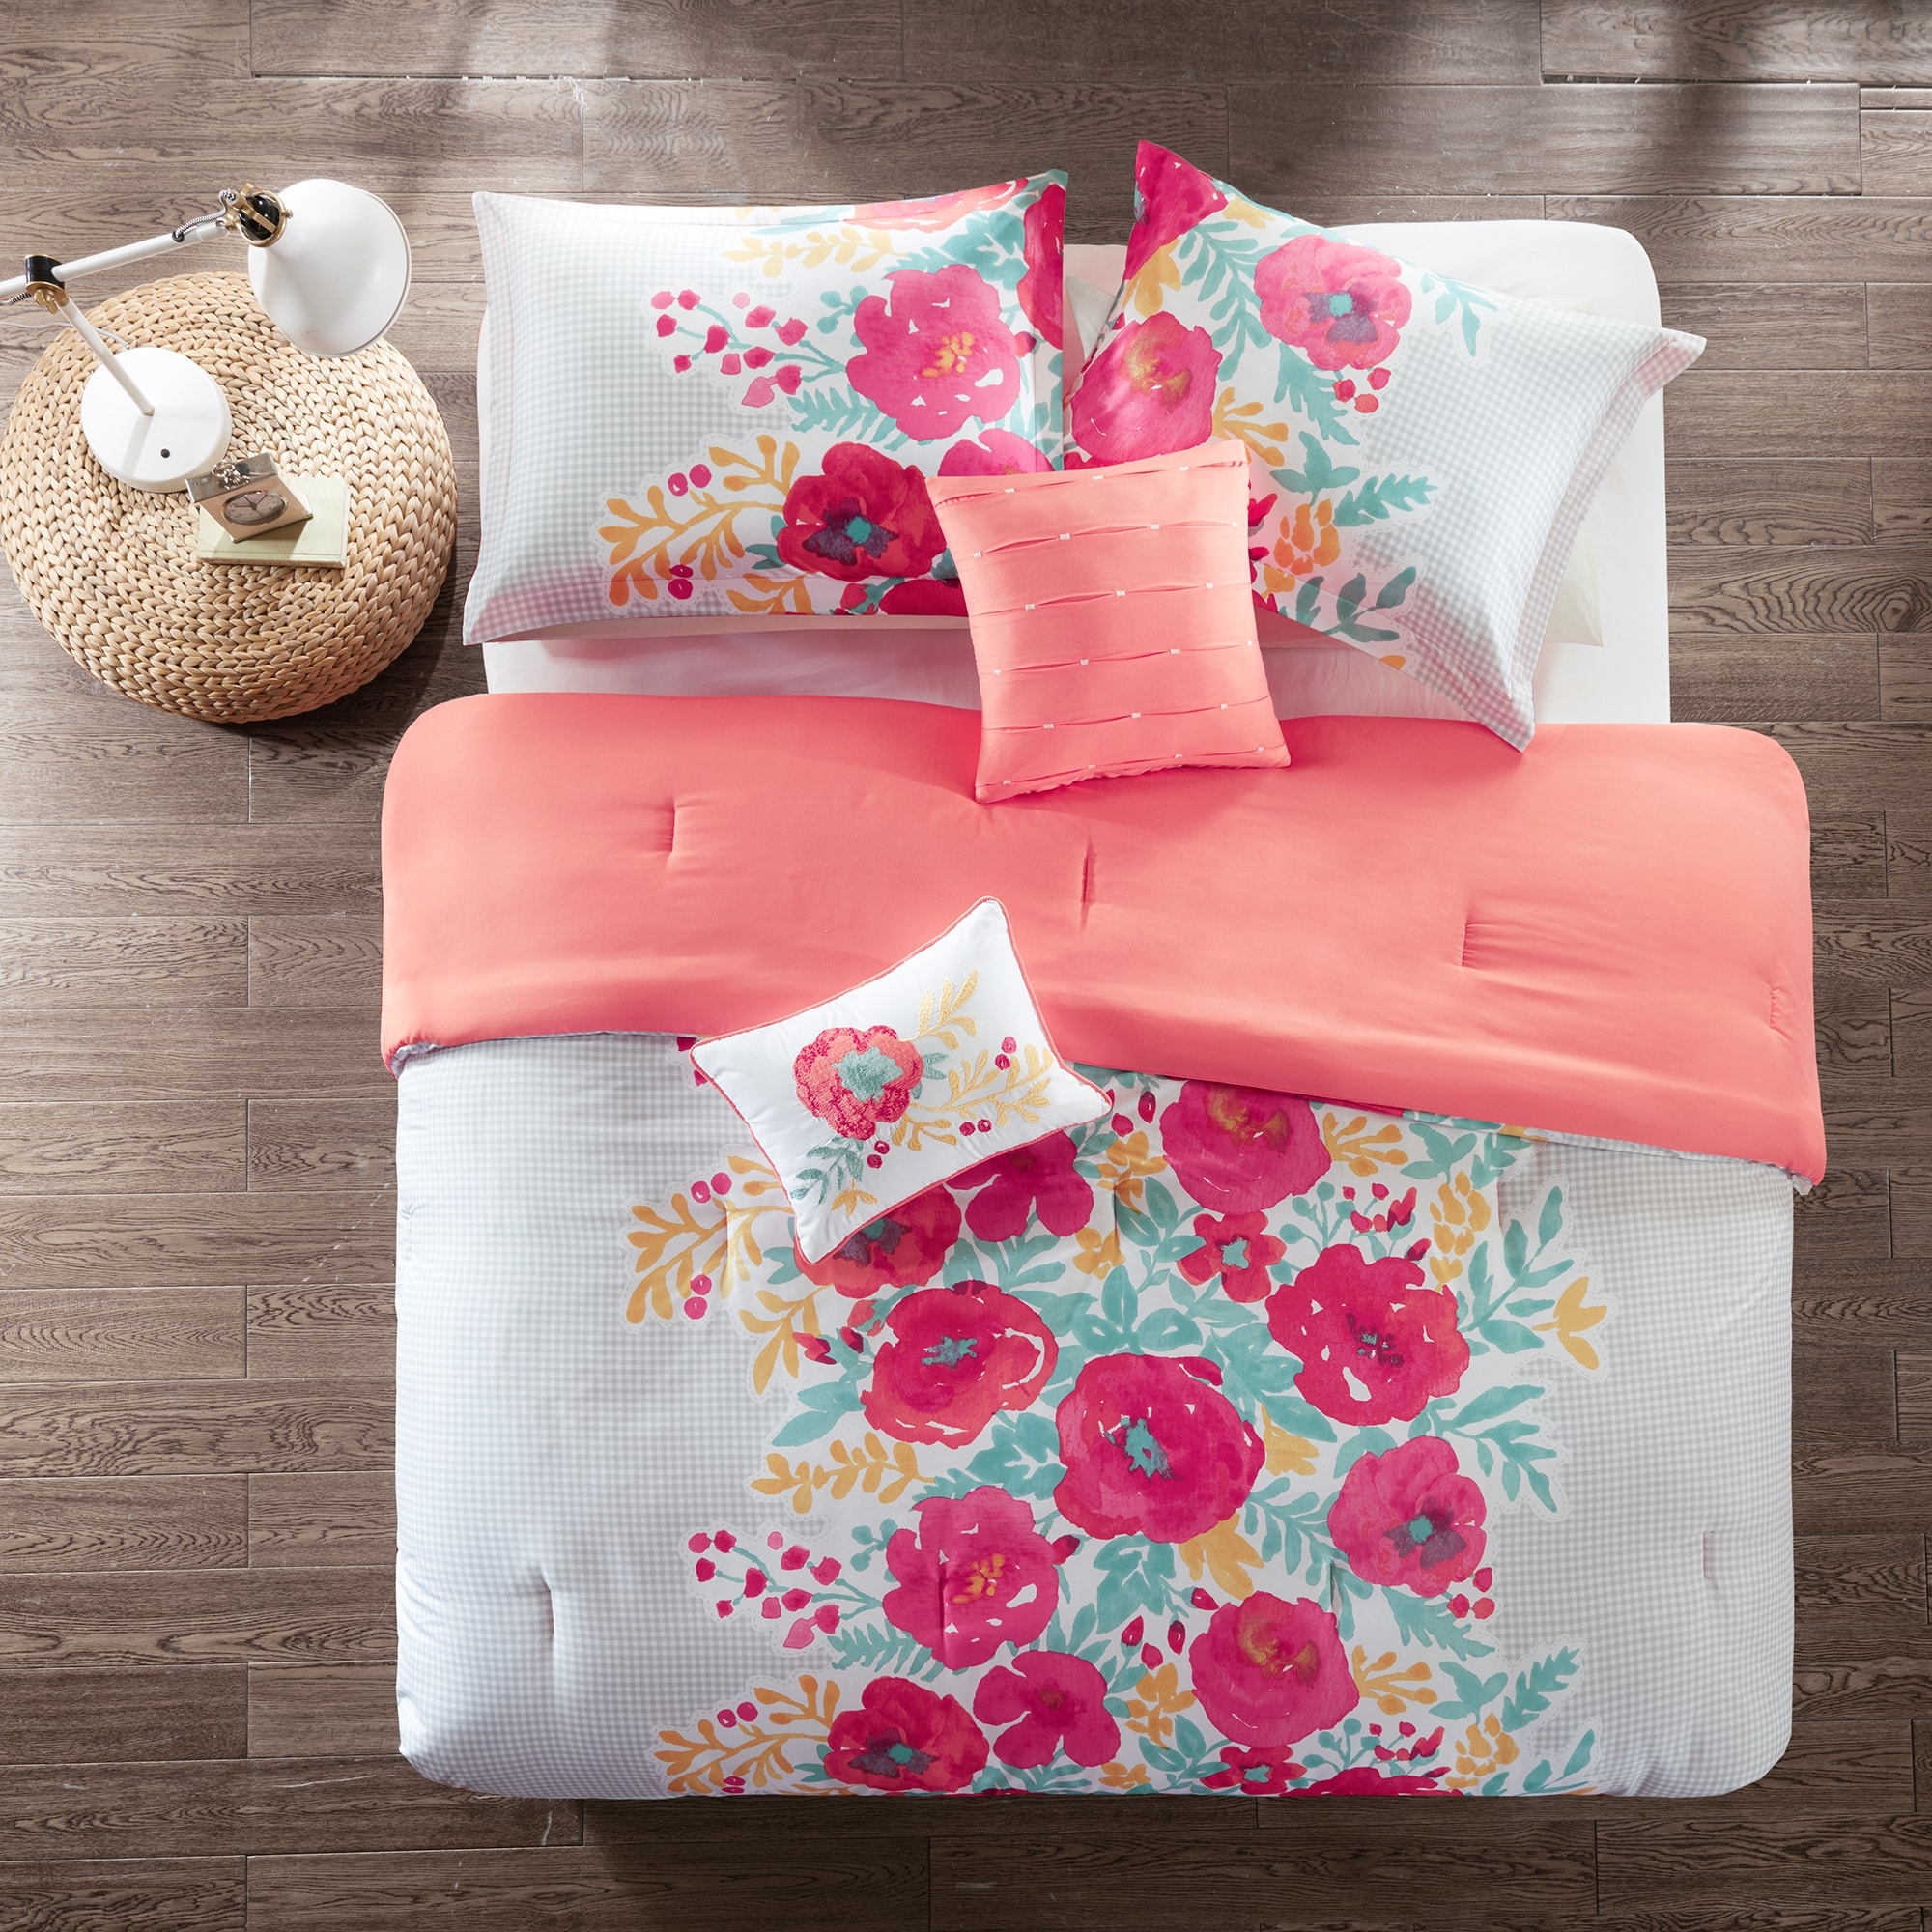 comforter bedding wayfair reversible bed and keyword turquoise set coral emma